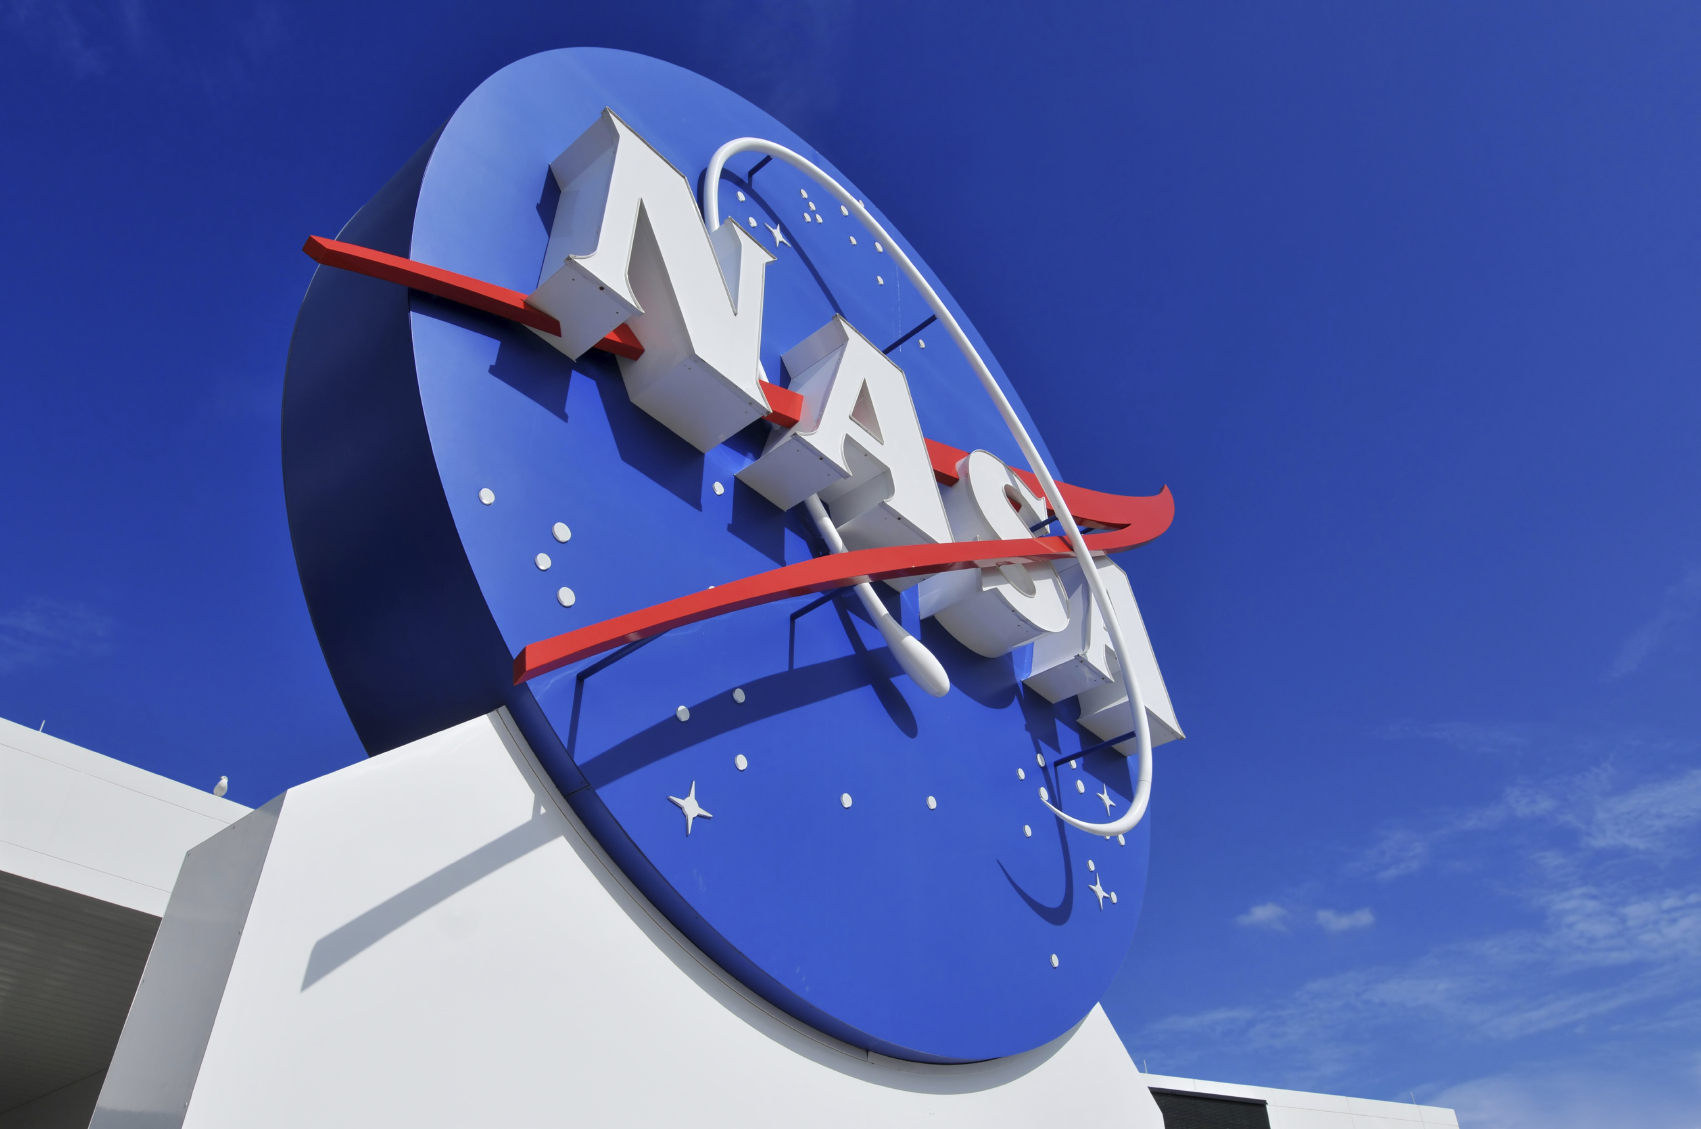 NASA Environmentally Responsible Aviation Project